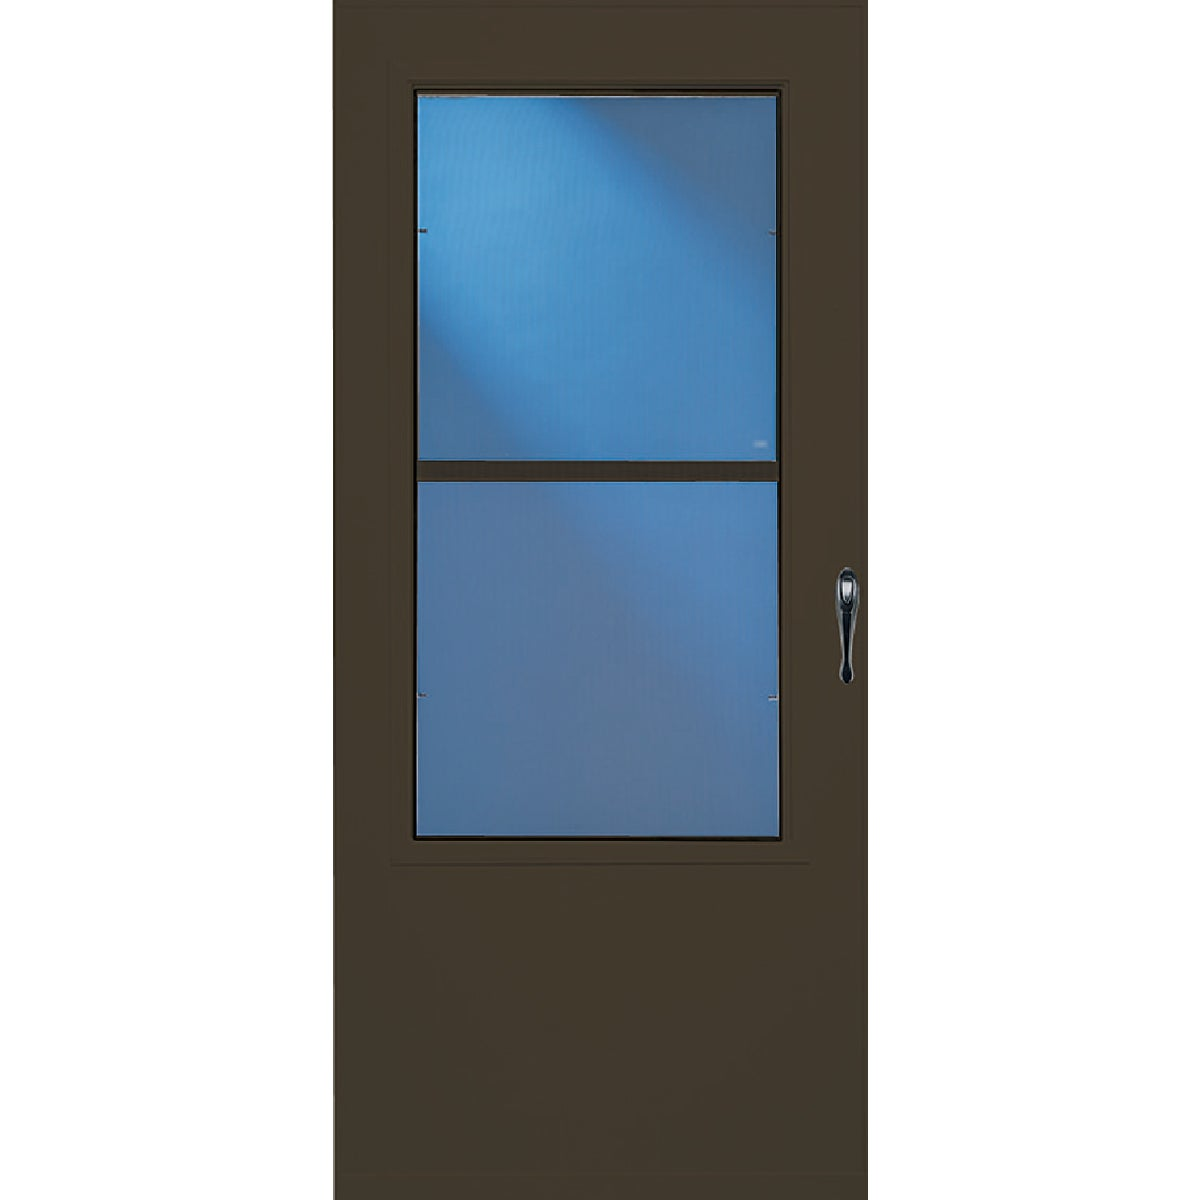 "36"" BRN MULTI-VENT DOOR - 83001 by Larson Mfg Co"